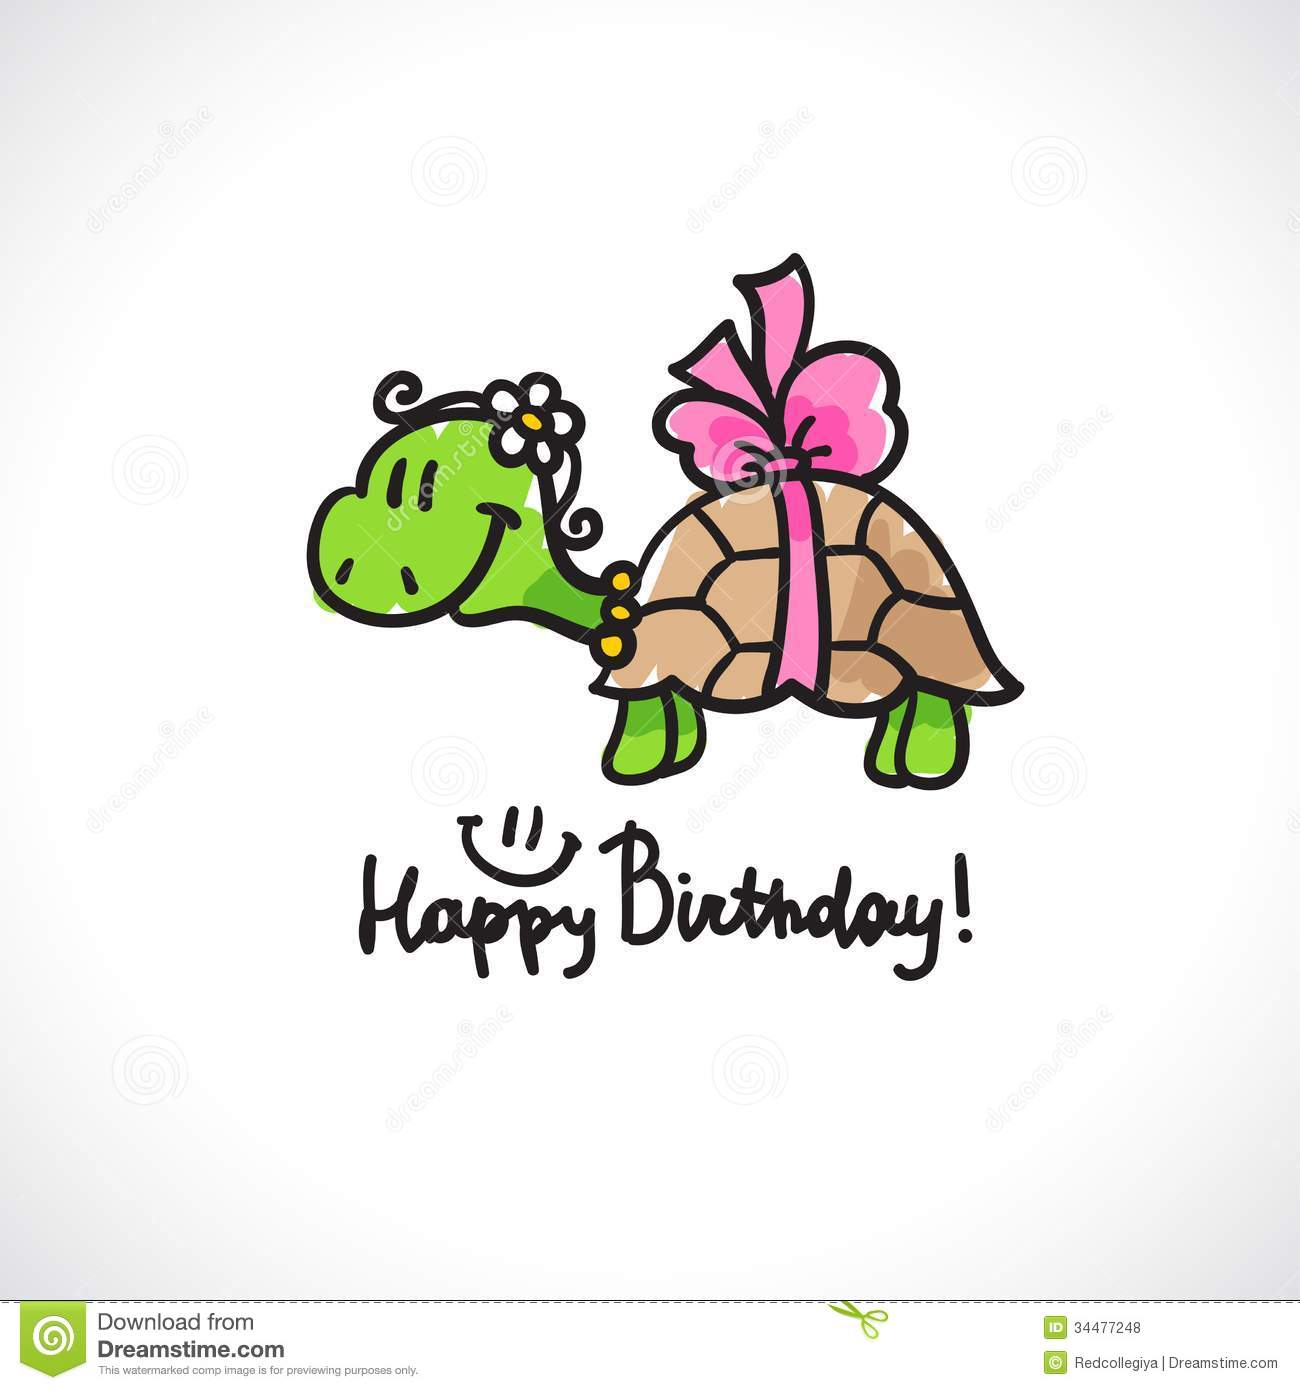 Birthday Card Royalty Free Stock Photos - Image: 34477248: dreamstime.com/royalty-free-stock-photos-birthday-card-cartoon...